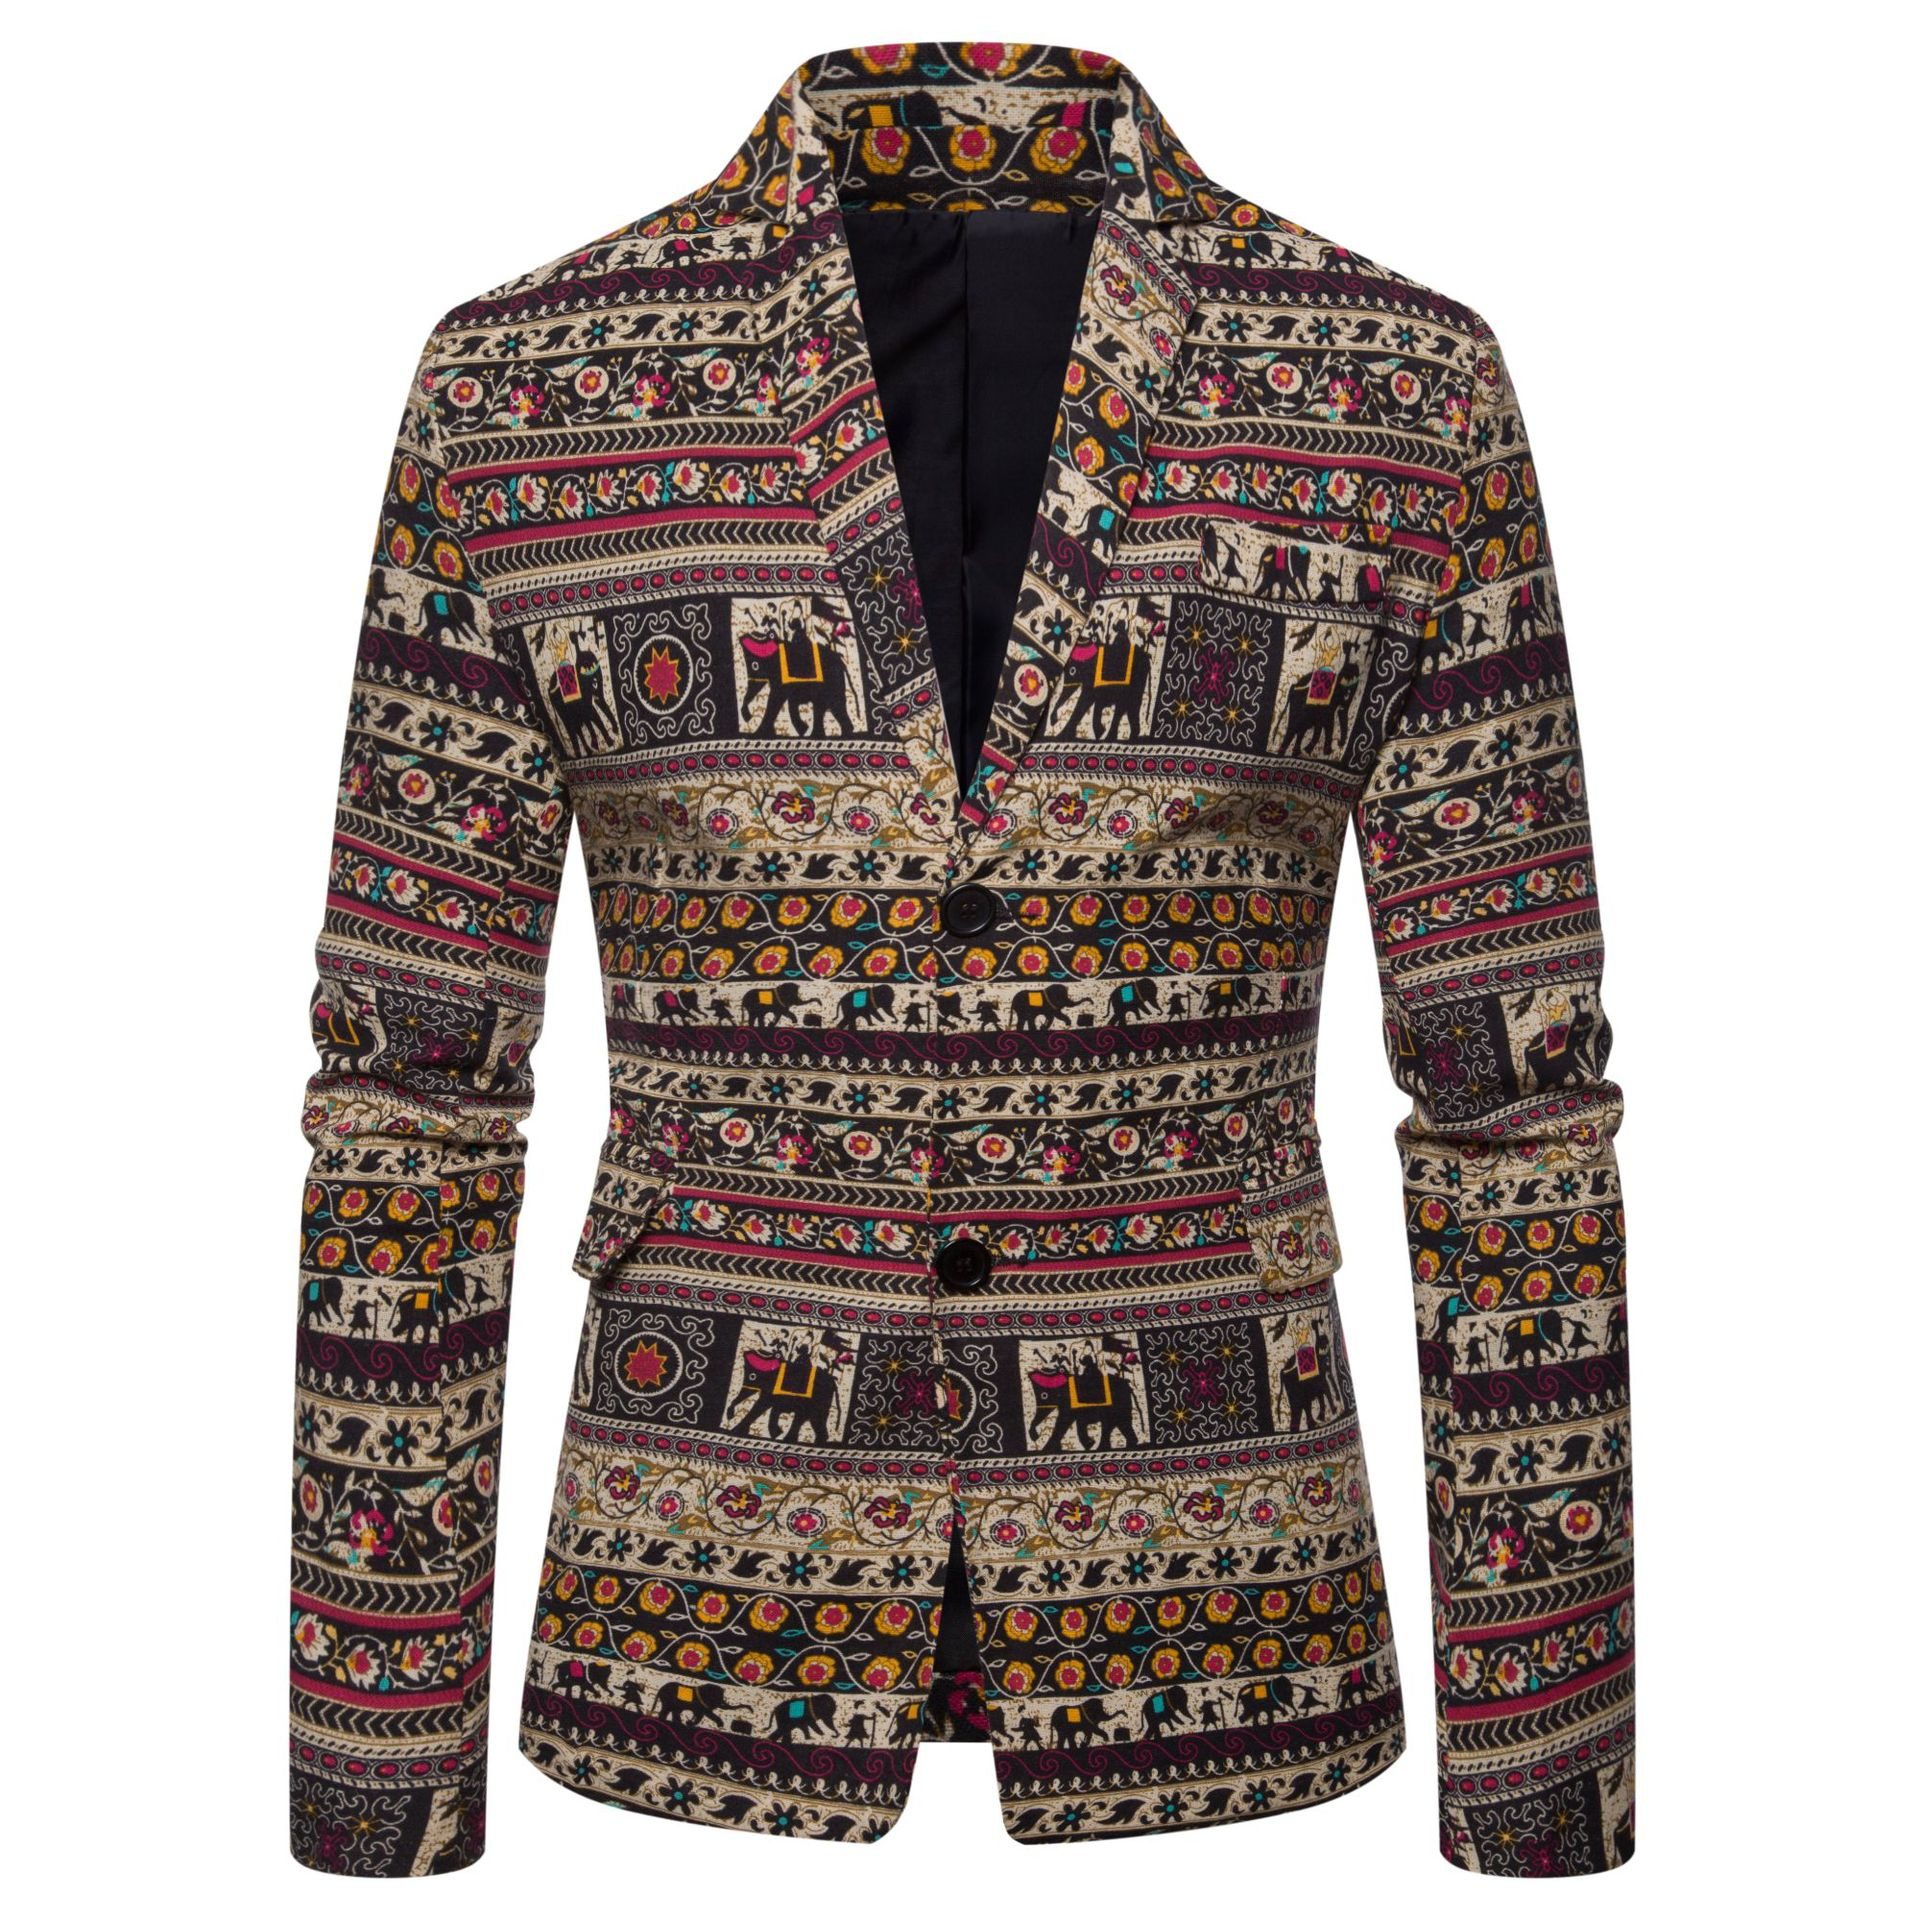 Large Size Men's National Wind Printed West Dress Male Two Buckles Suit Jacket - color 4XL